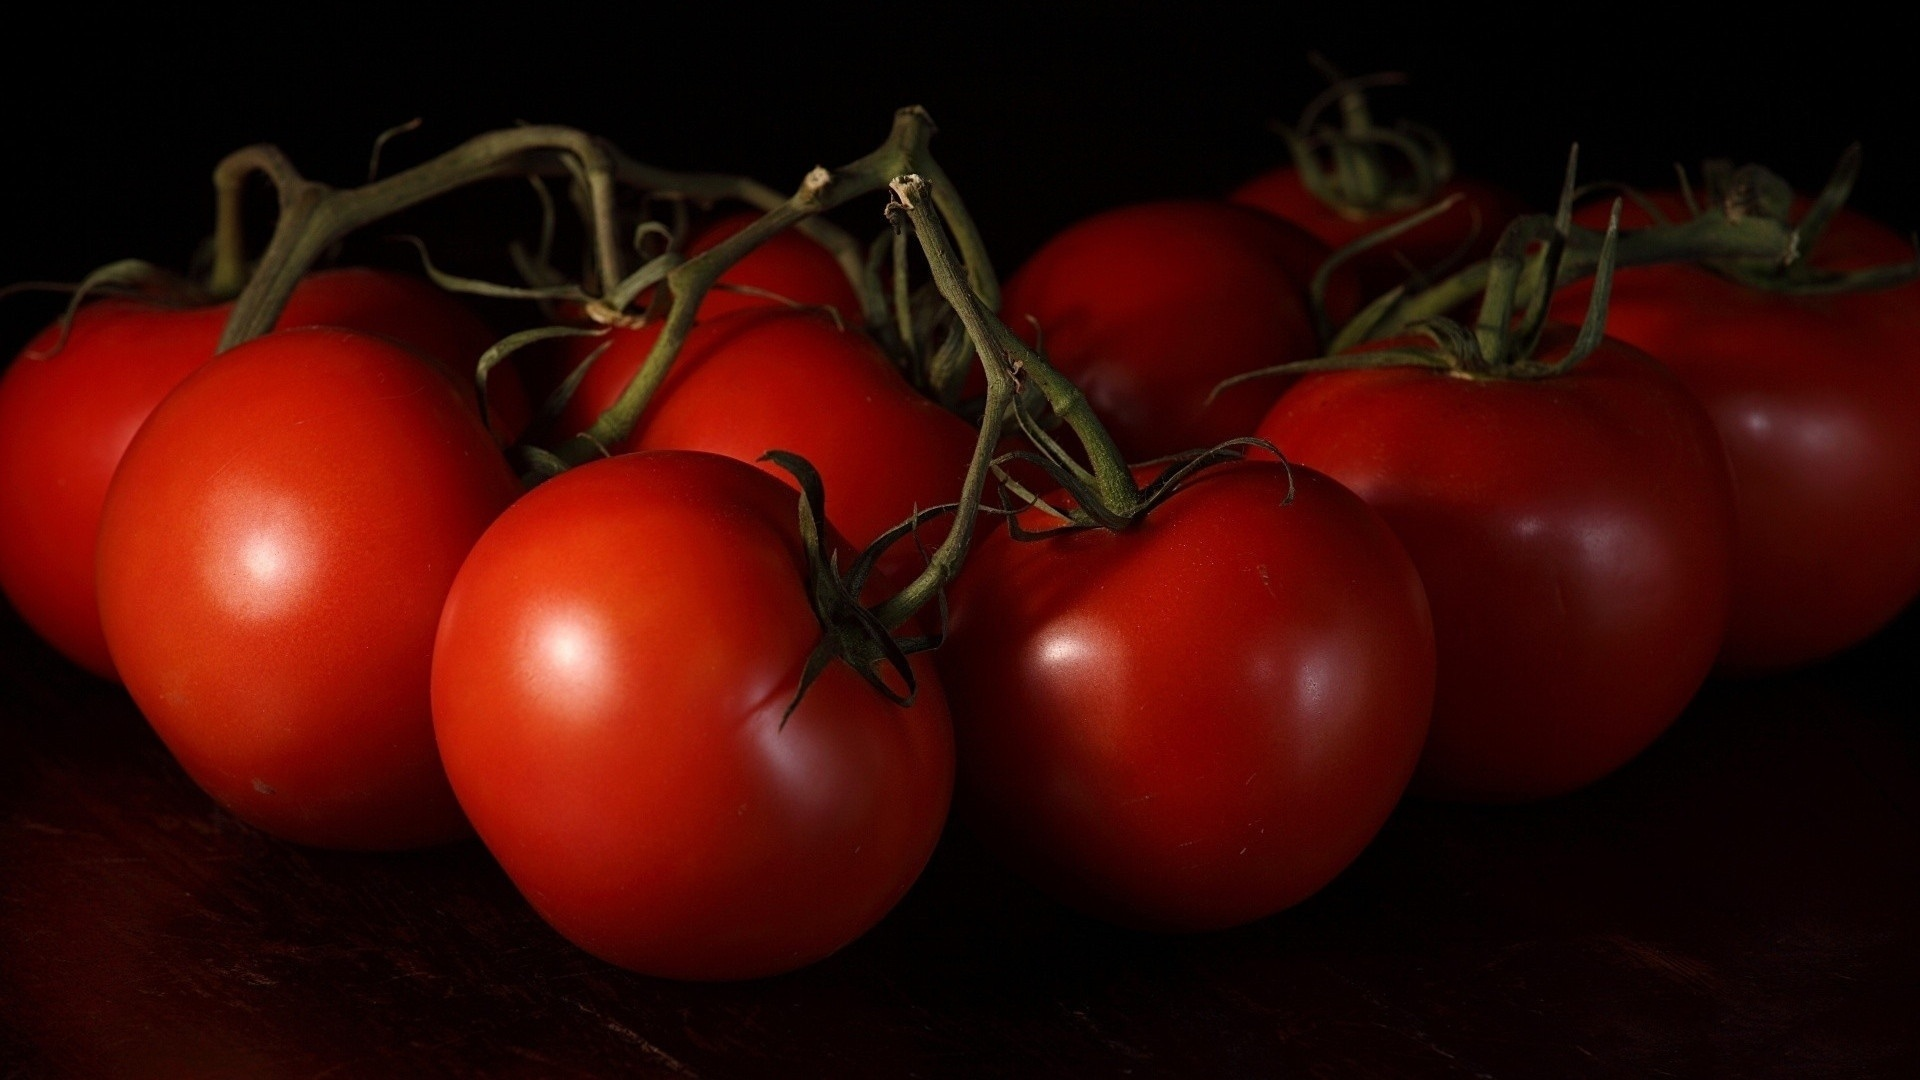 Tomatoes wallpaper photo hd